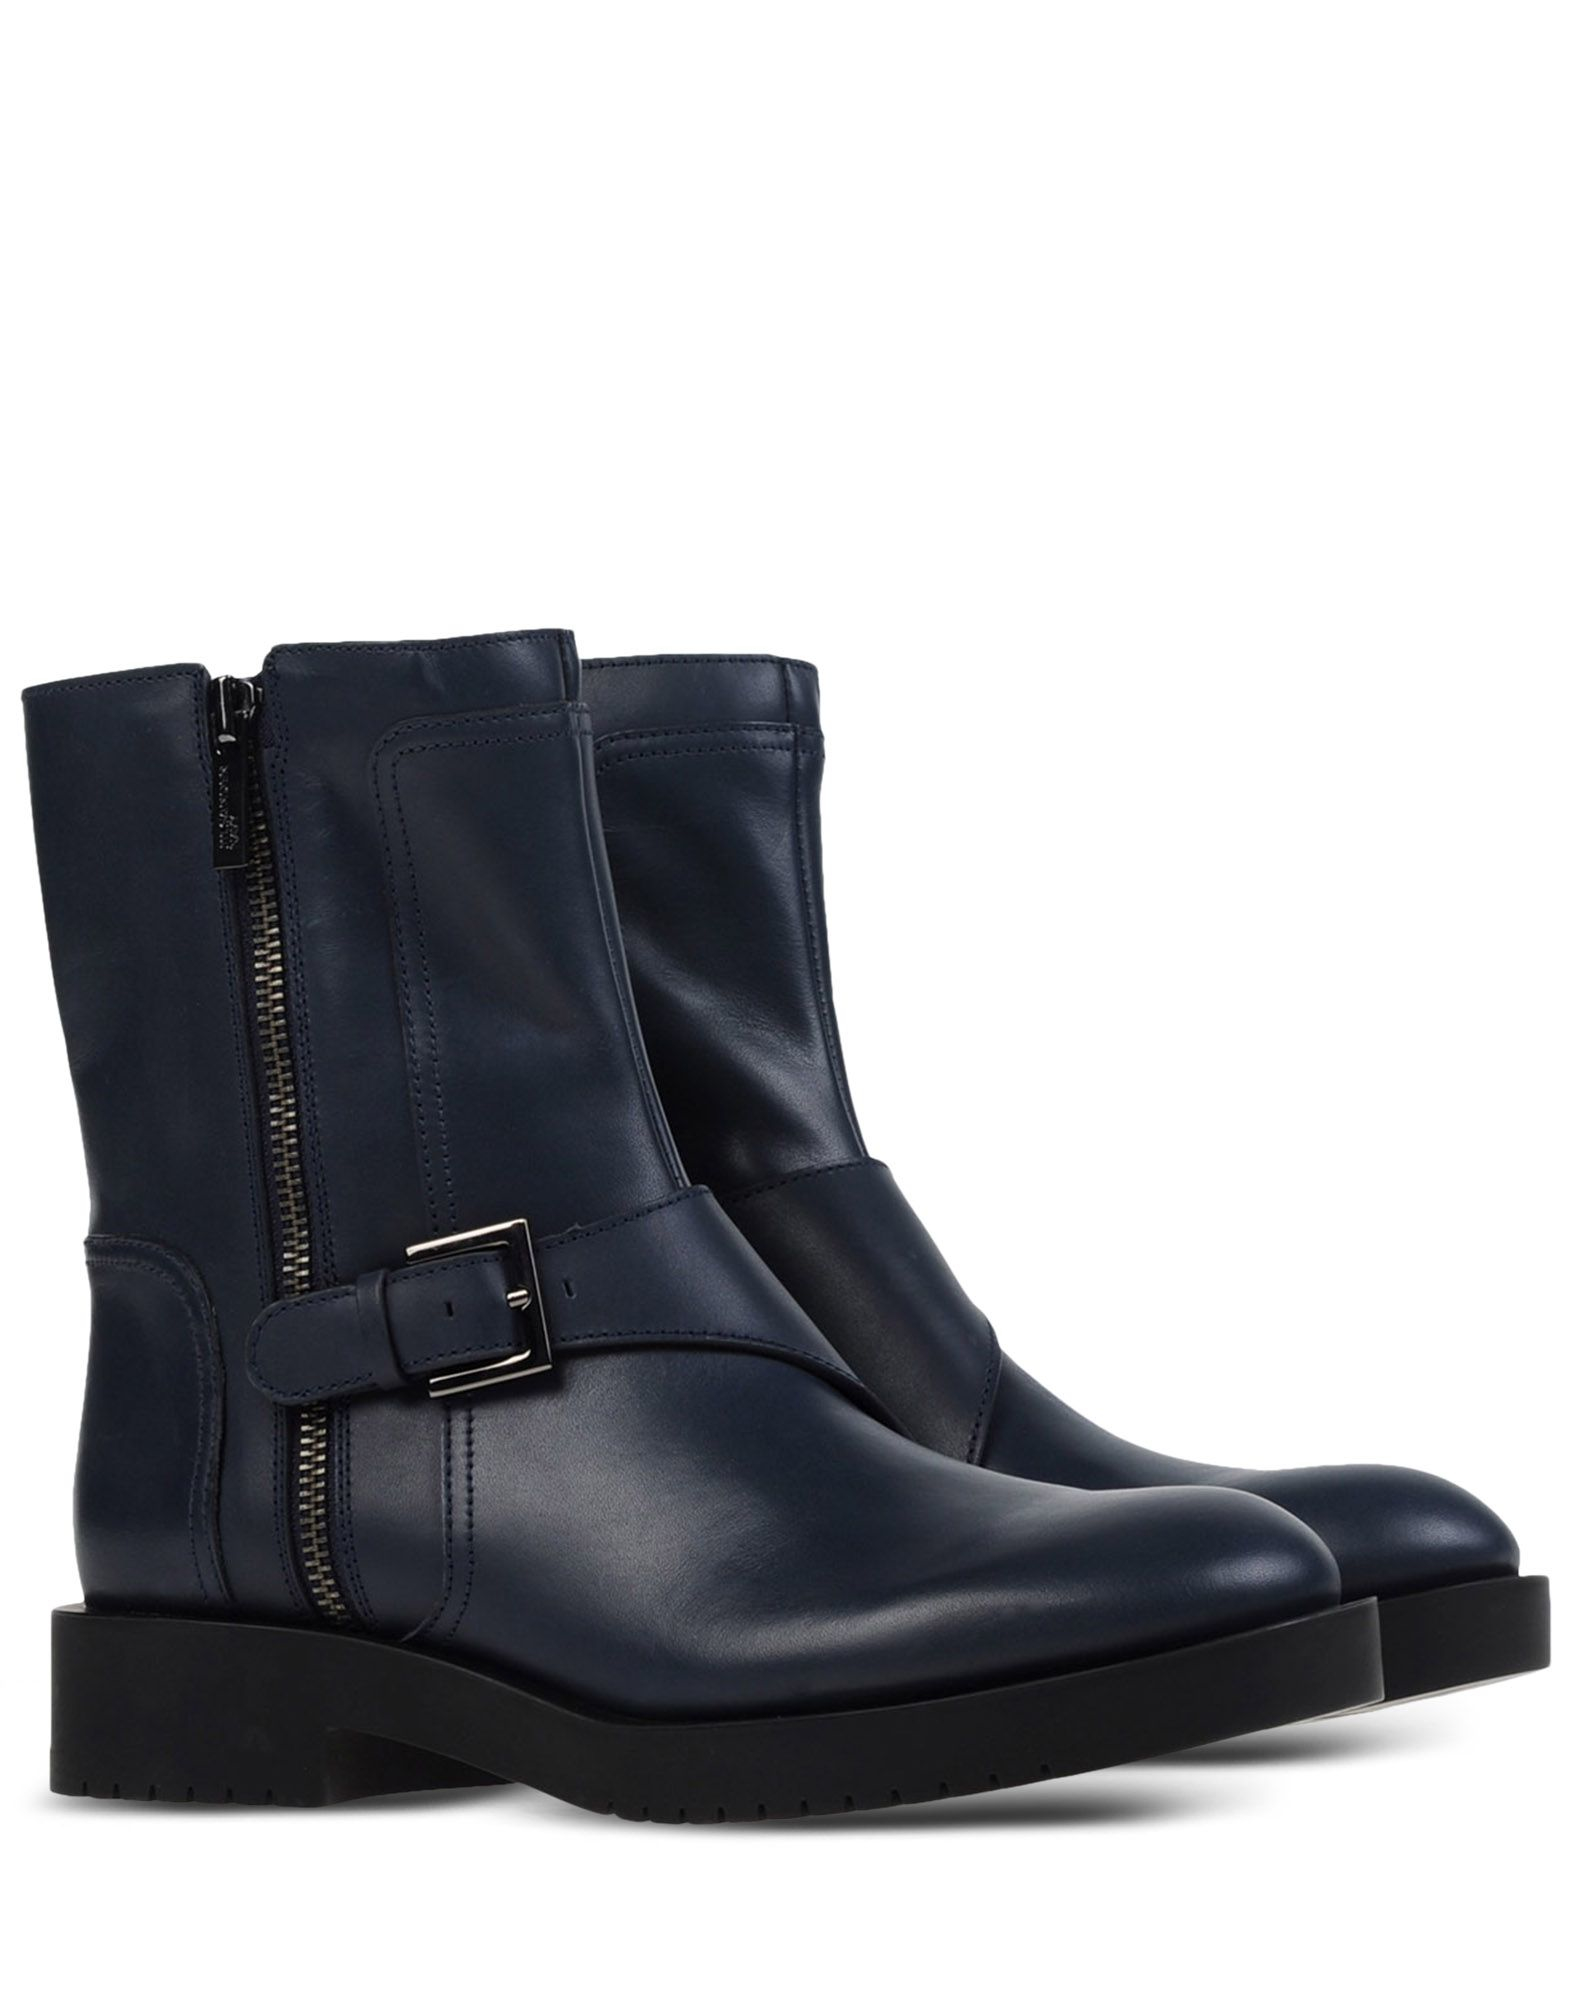 jil sander navy buckled leather ankle boots in blue